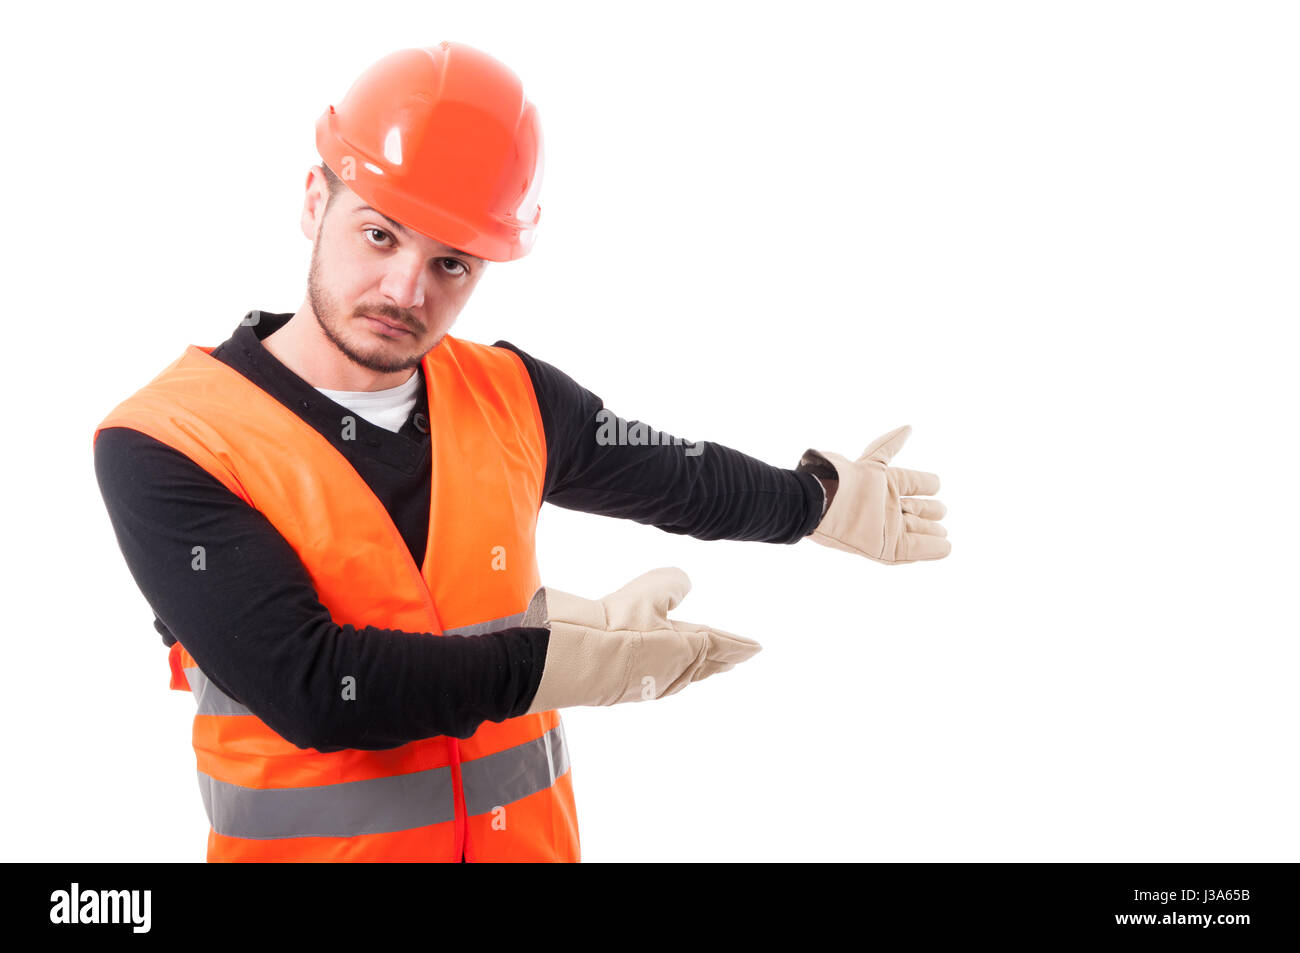 Architect or builder indicate something at blank copyspace behind him on white background - Stock Image